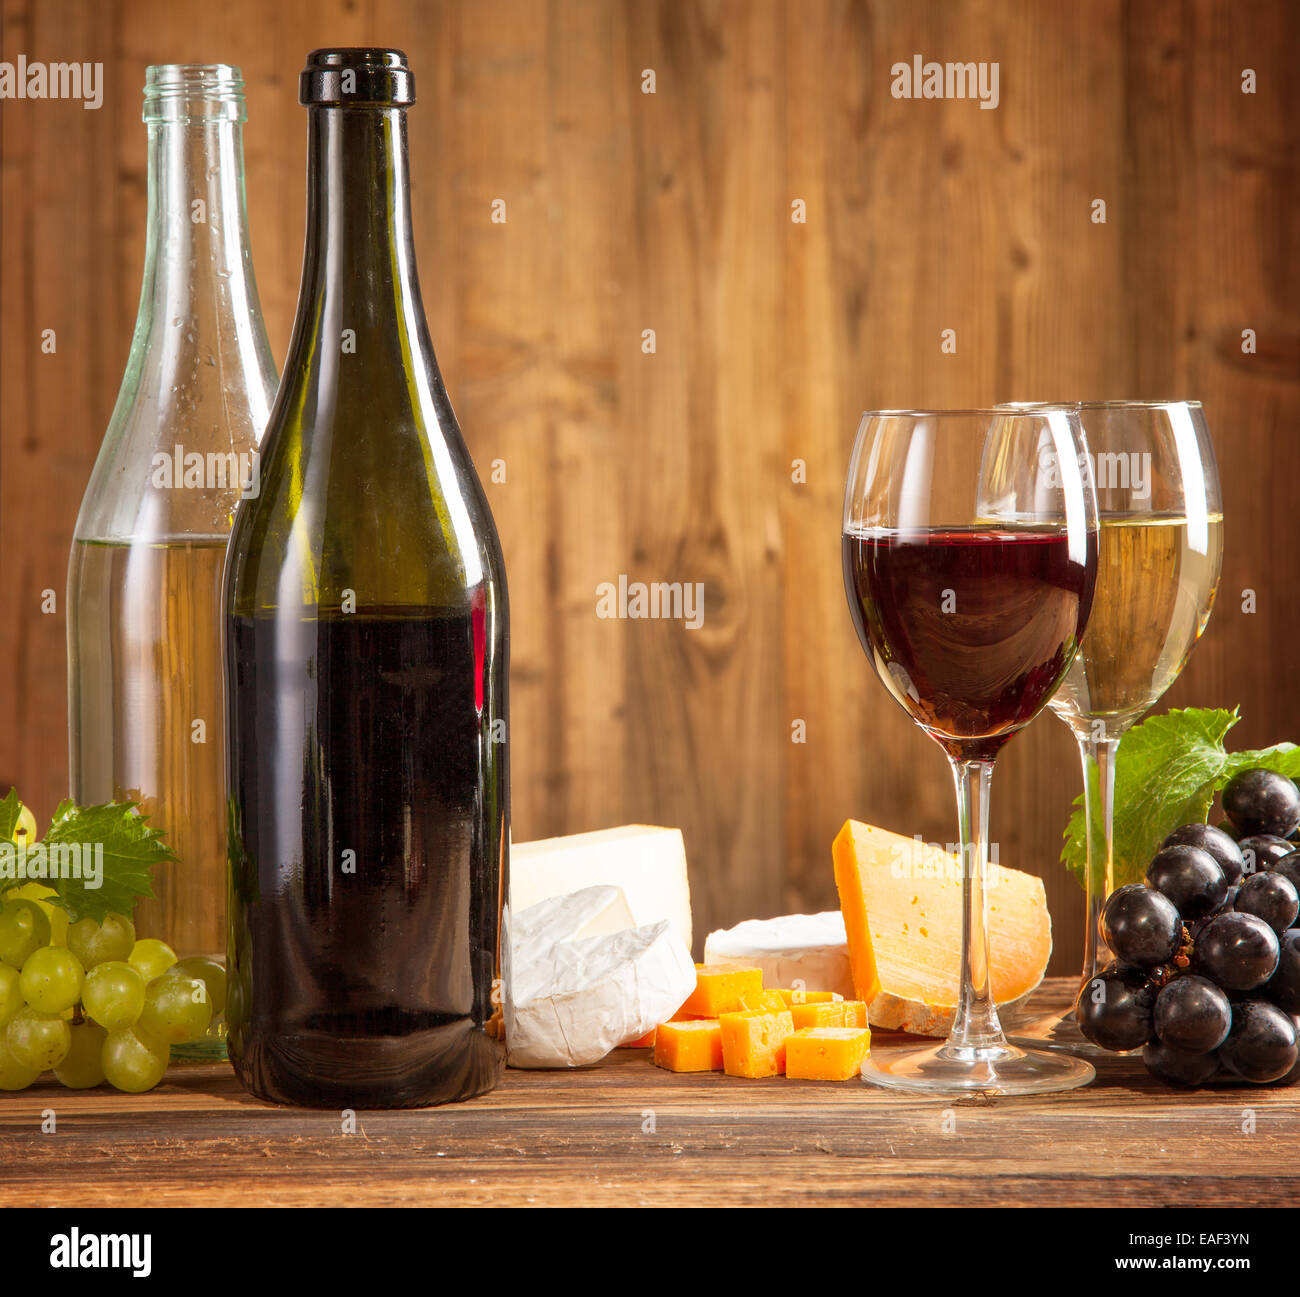 Wine with grapes and cheese on wooden planks - Stock Image